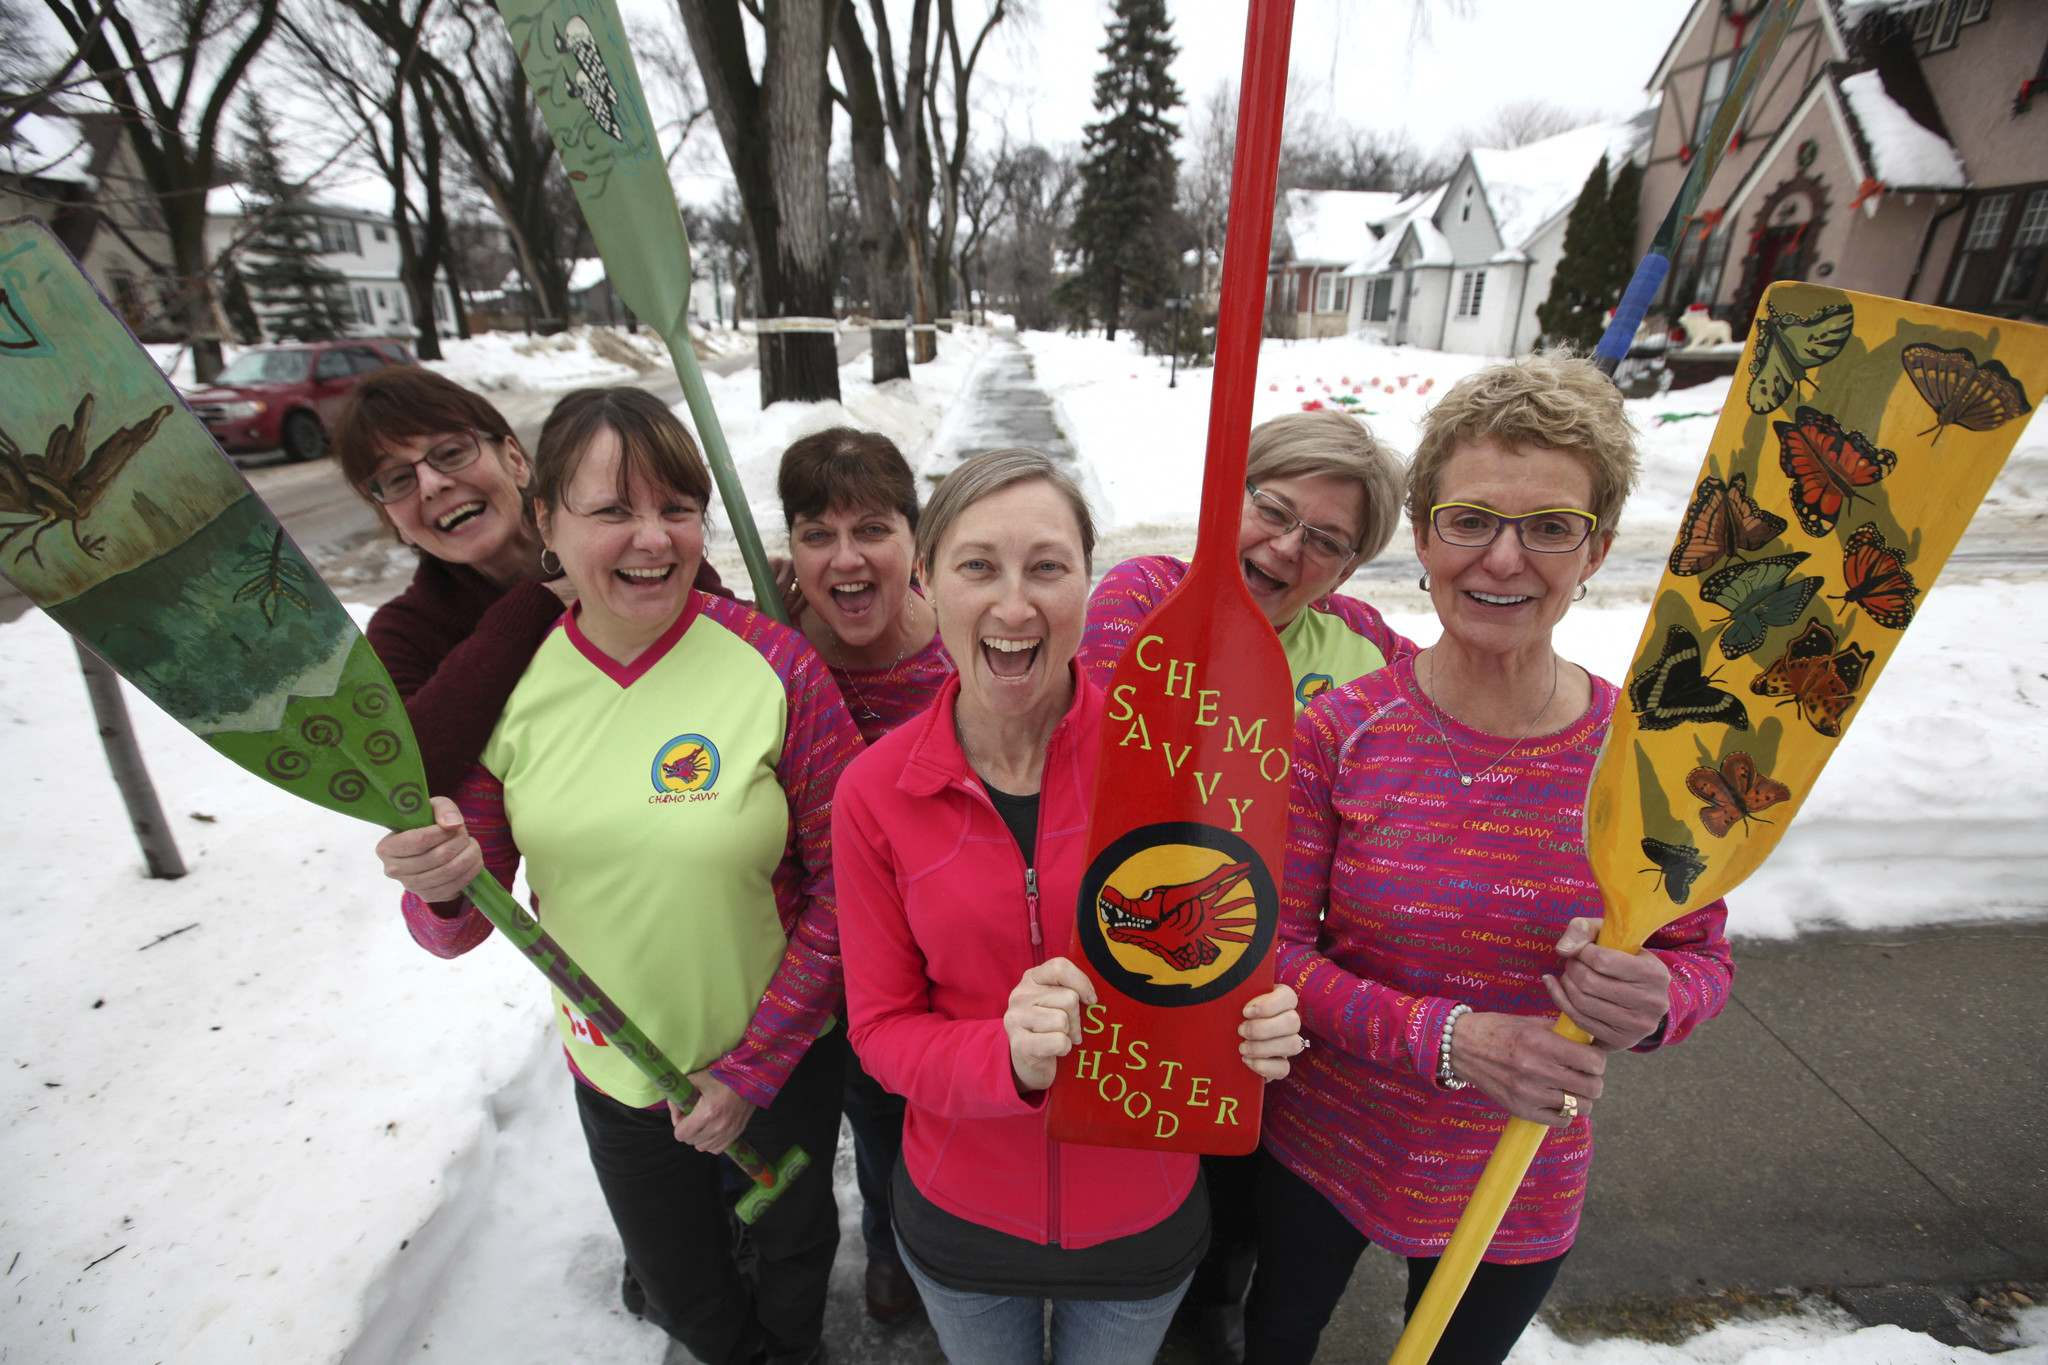 RUTH BONNEVILLE / WINNIPEG FREE PRESS</p><p>From left: Debbie Burns, Cathy Prusak, Mary McCormick, Tammy MacDonald, Marleen Roy and Louise Welsh, some of the members of Chemo Savvy&#39;s dragon boat team, show off the paddles they designed.</p>